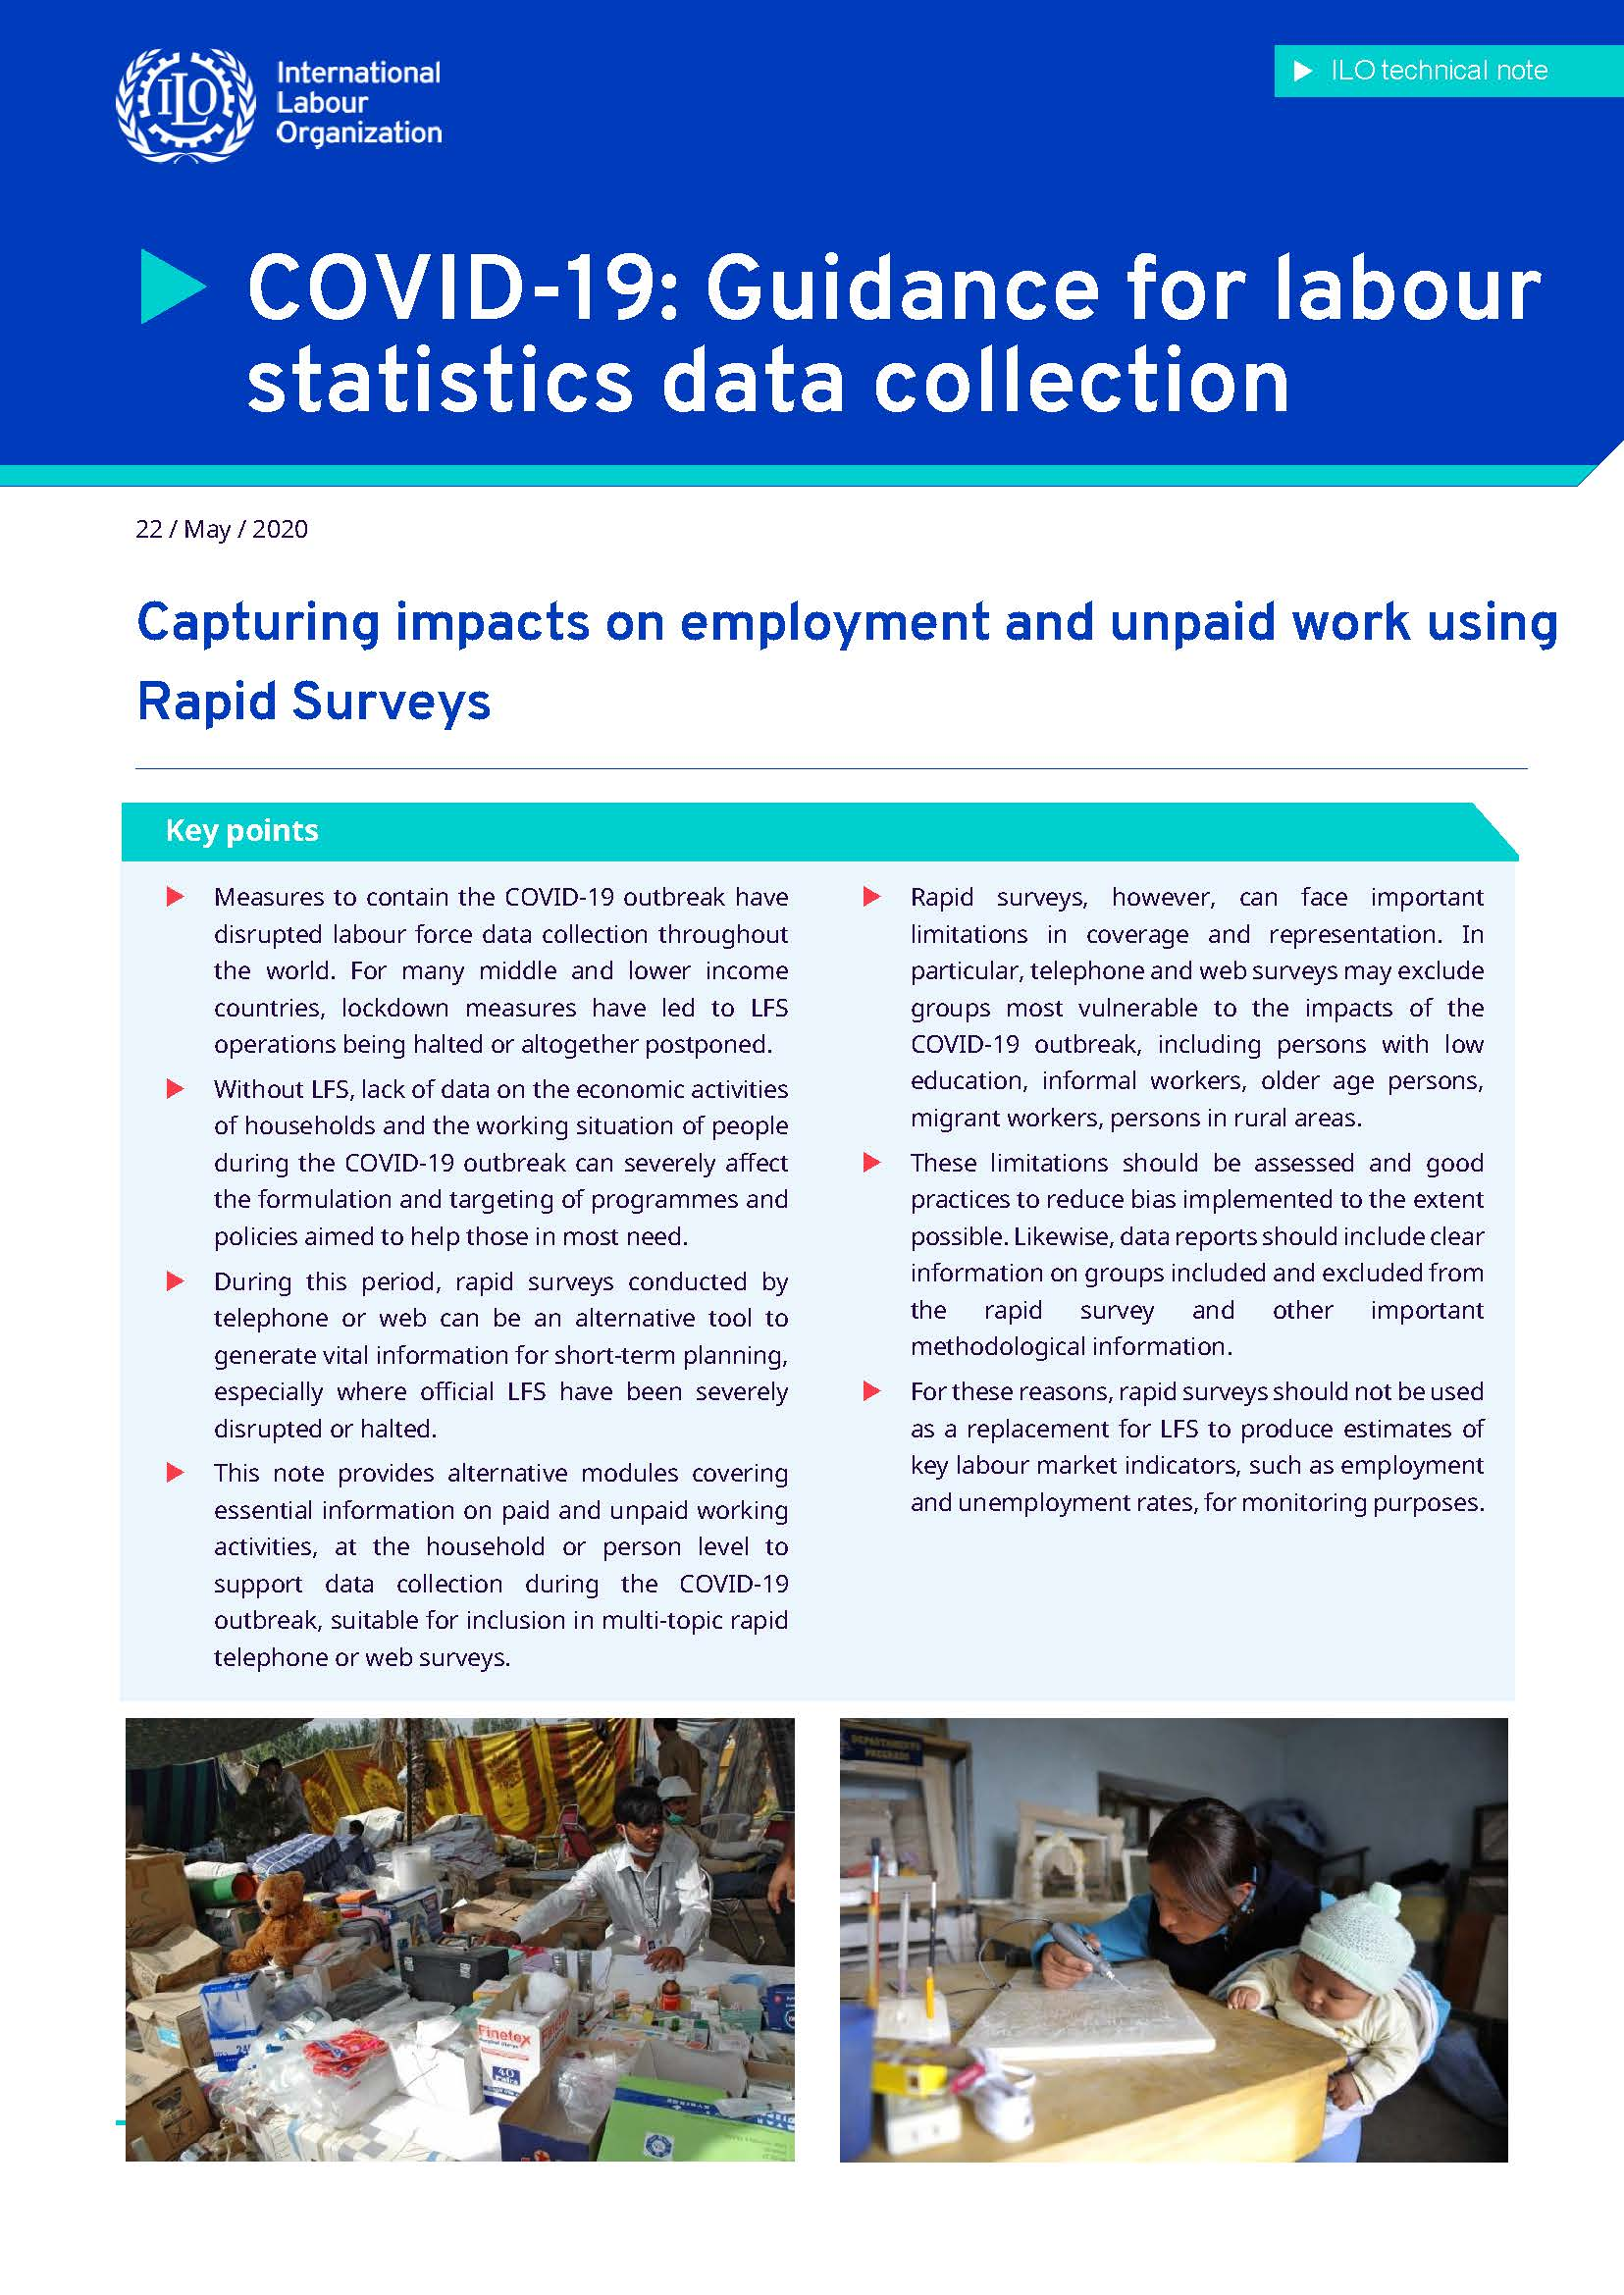 Capturing impacts on employment and unpaid work using Rapid Surveys